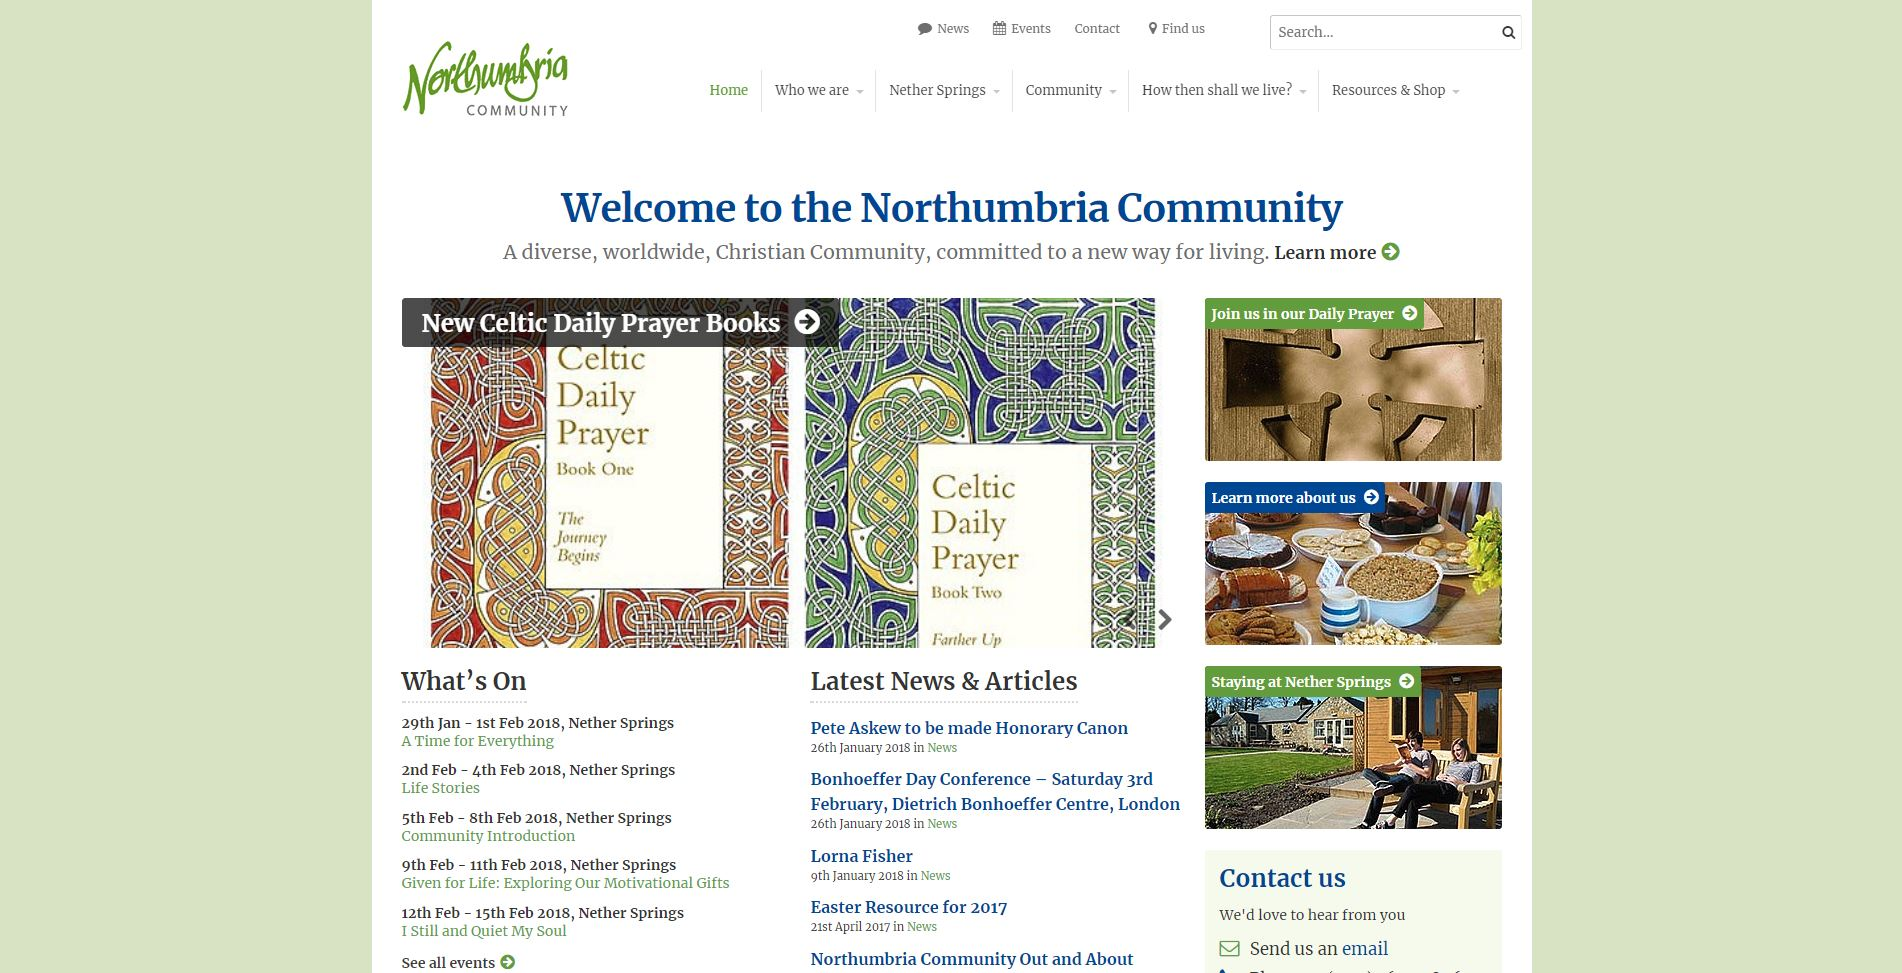 Northumbria Community